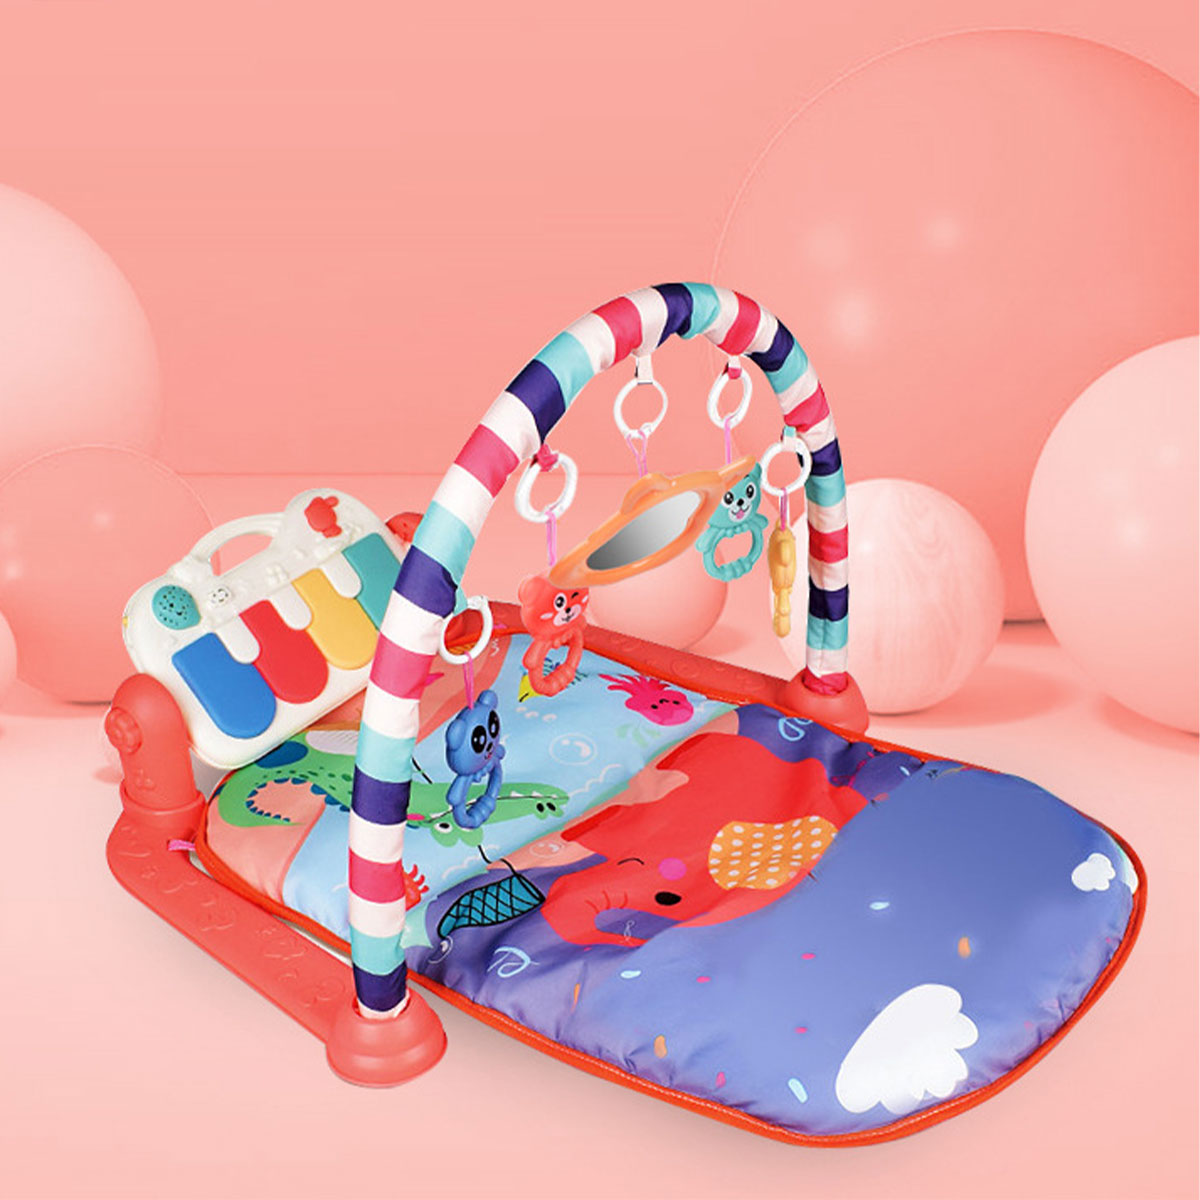 Delicate 3 In 1 Baby Infant Gym Play Mat Fitness Carpet Music Fun Piano Pedal Educational Toys